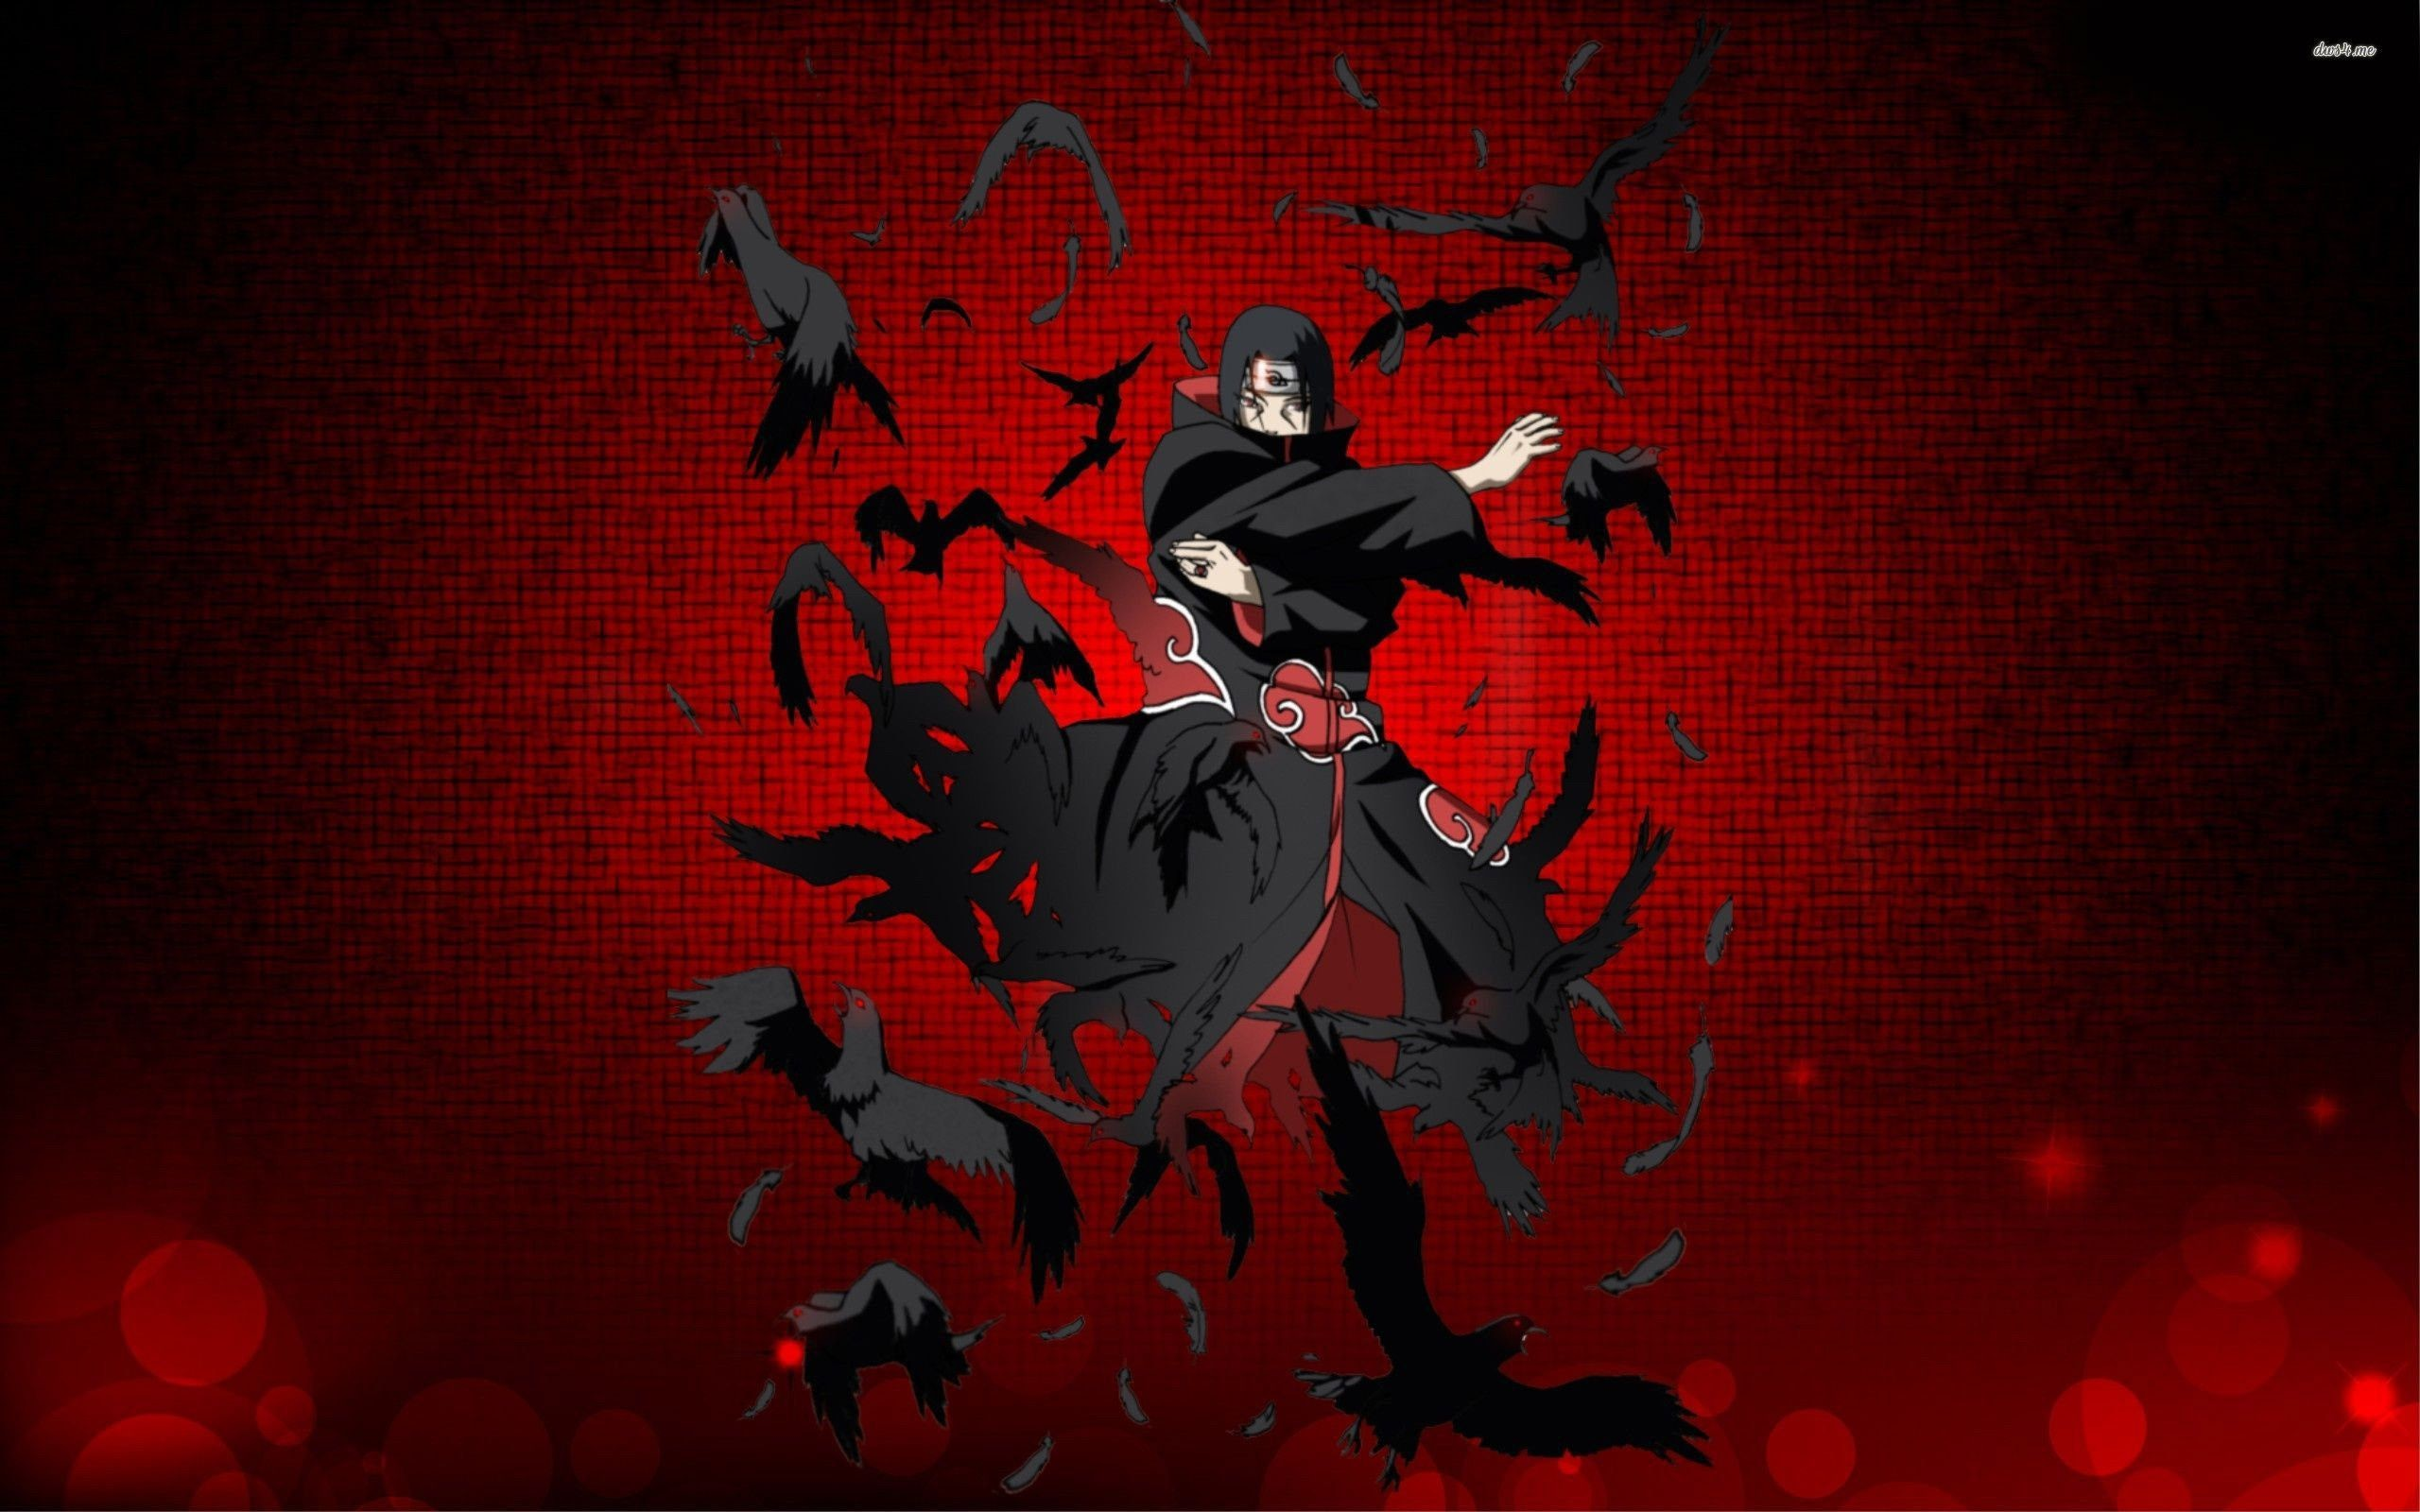 Res: 2560x1600, Naruto Shippuden Itachi Wallpaper Photo #TYi